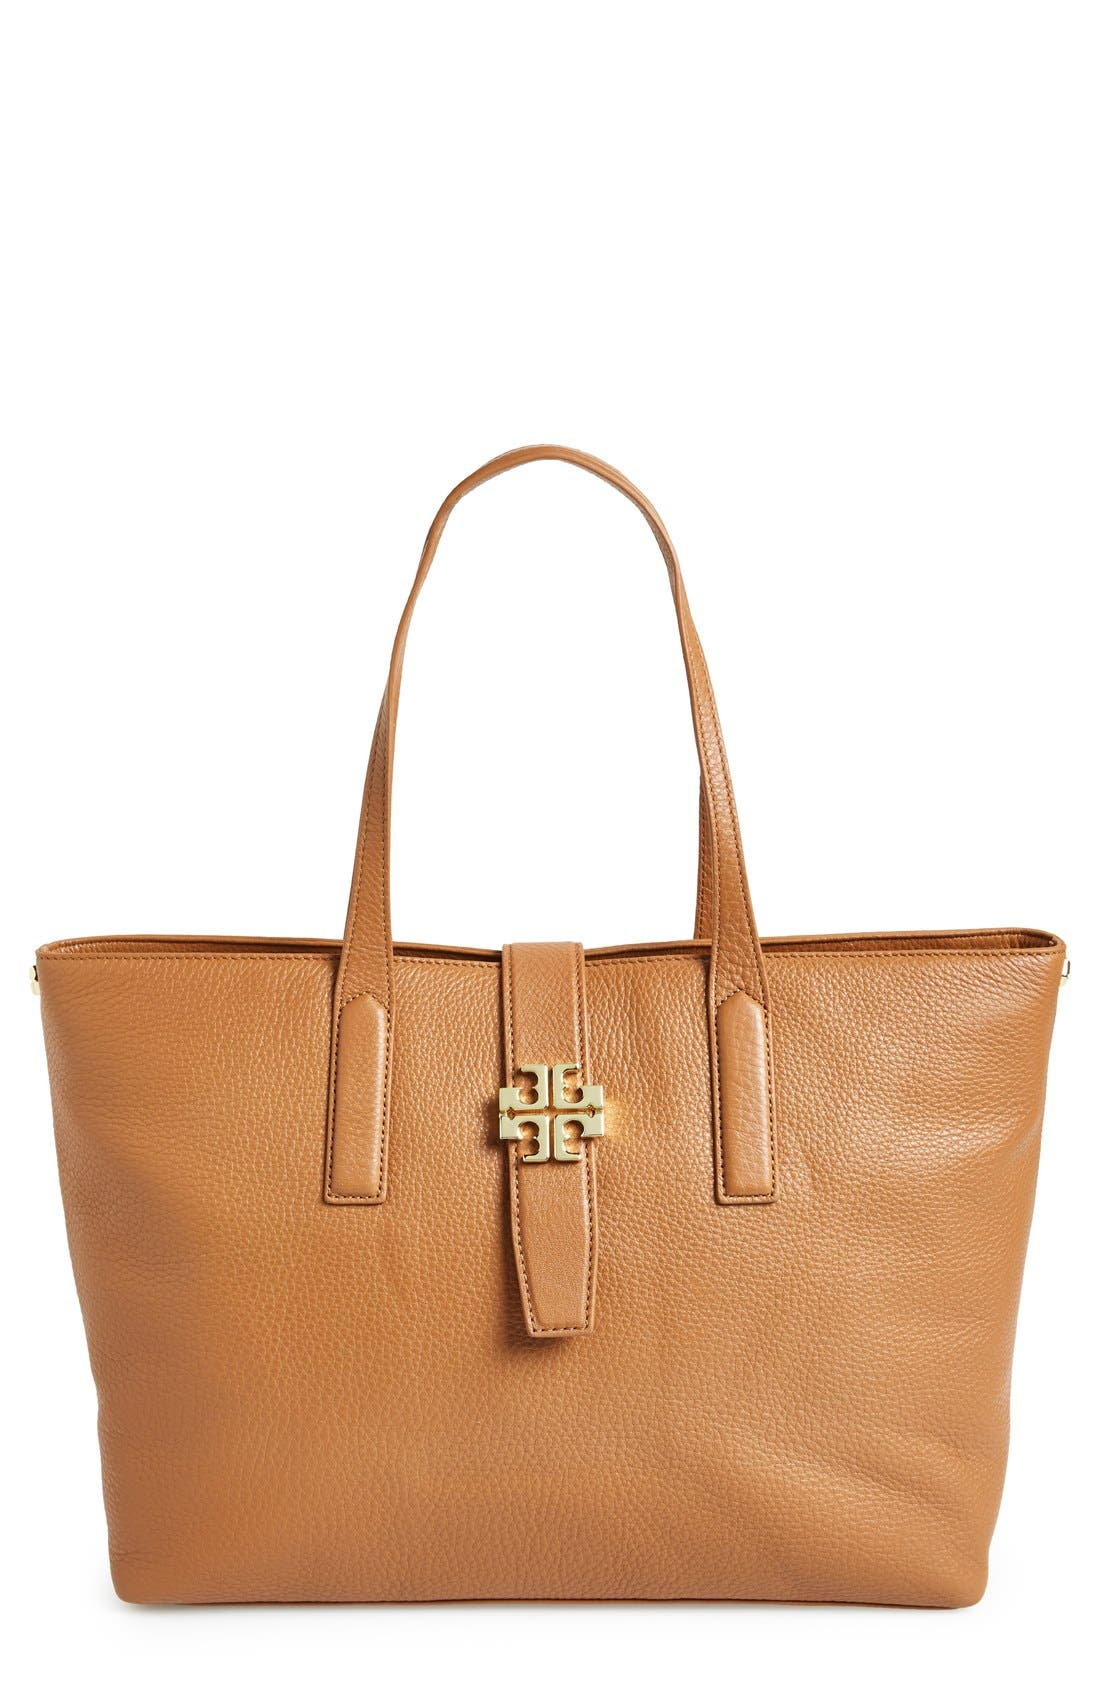 Main Image - Tory Burch 'Plaque' Leather Tote